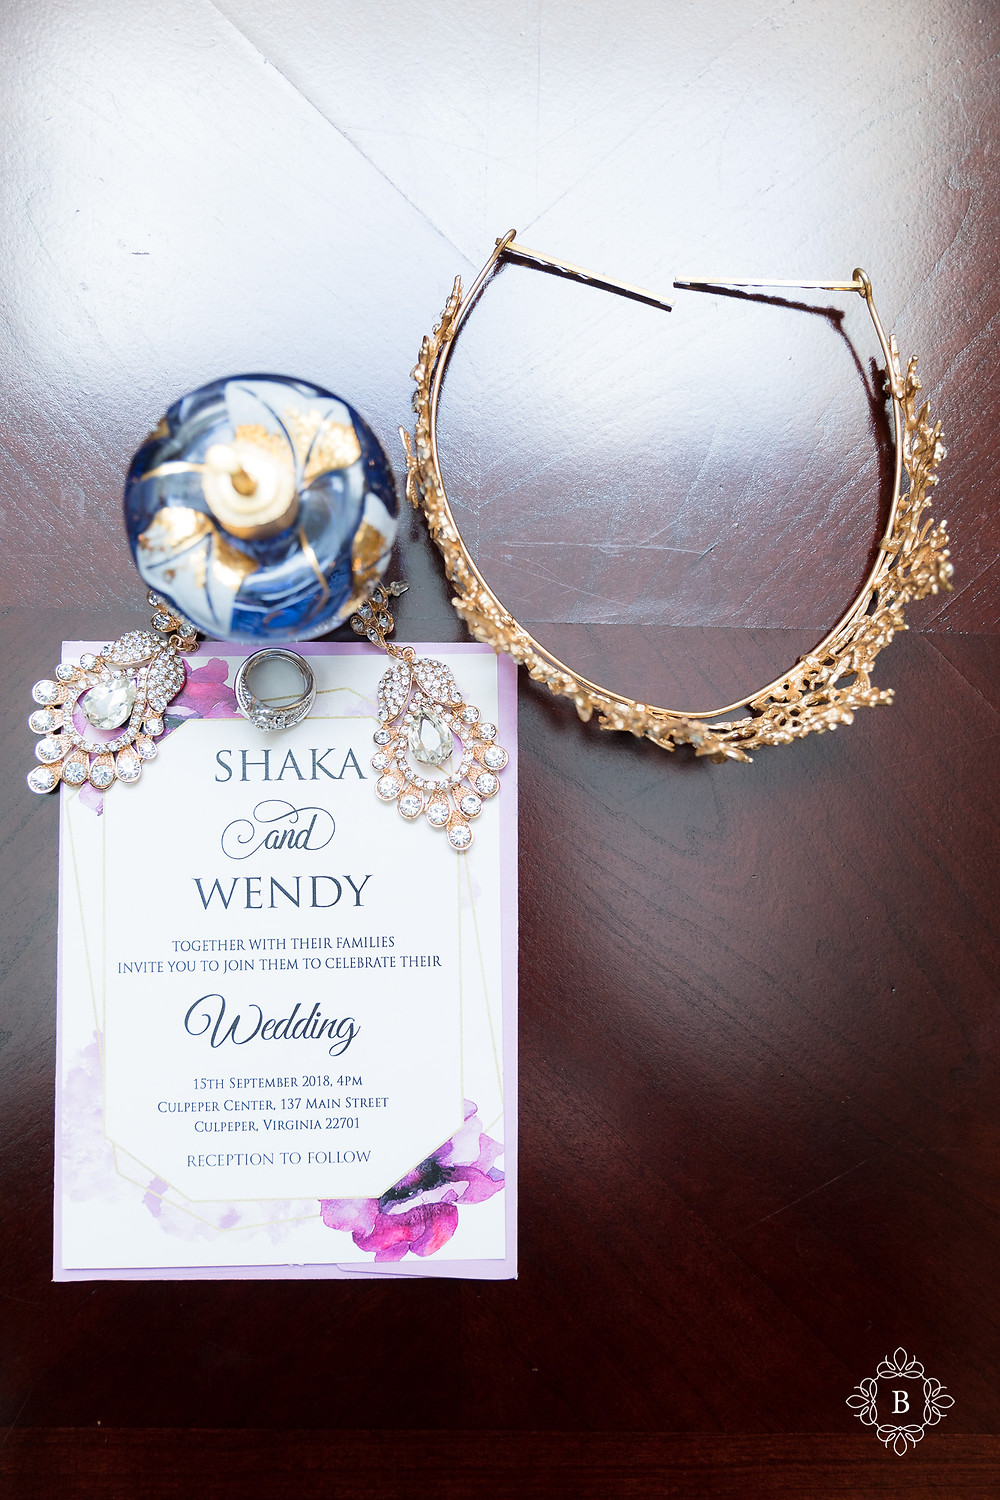 Northern Virginia Culpeper Center and Suites bridal details jewelry and perfume